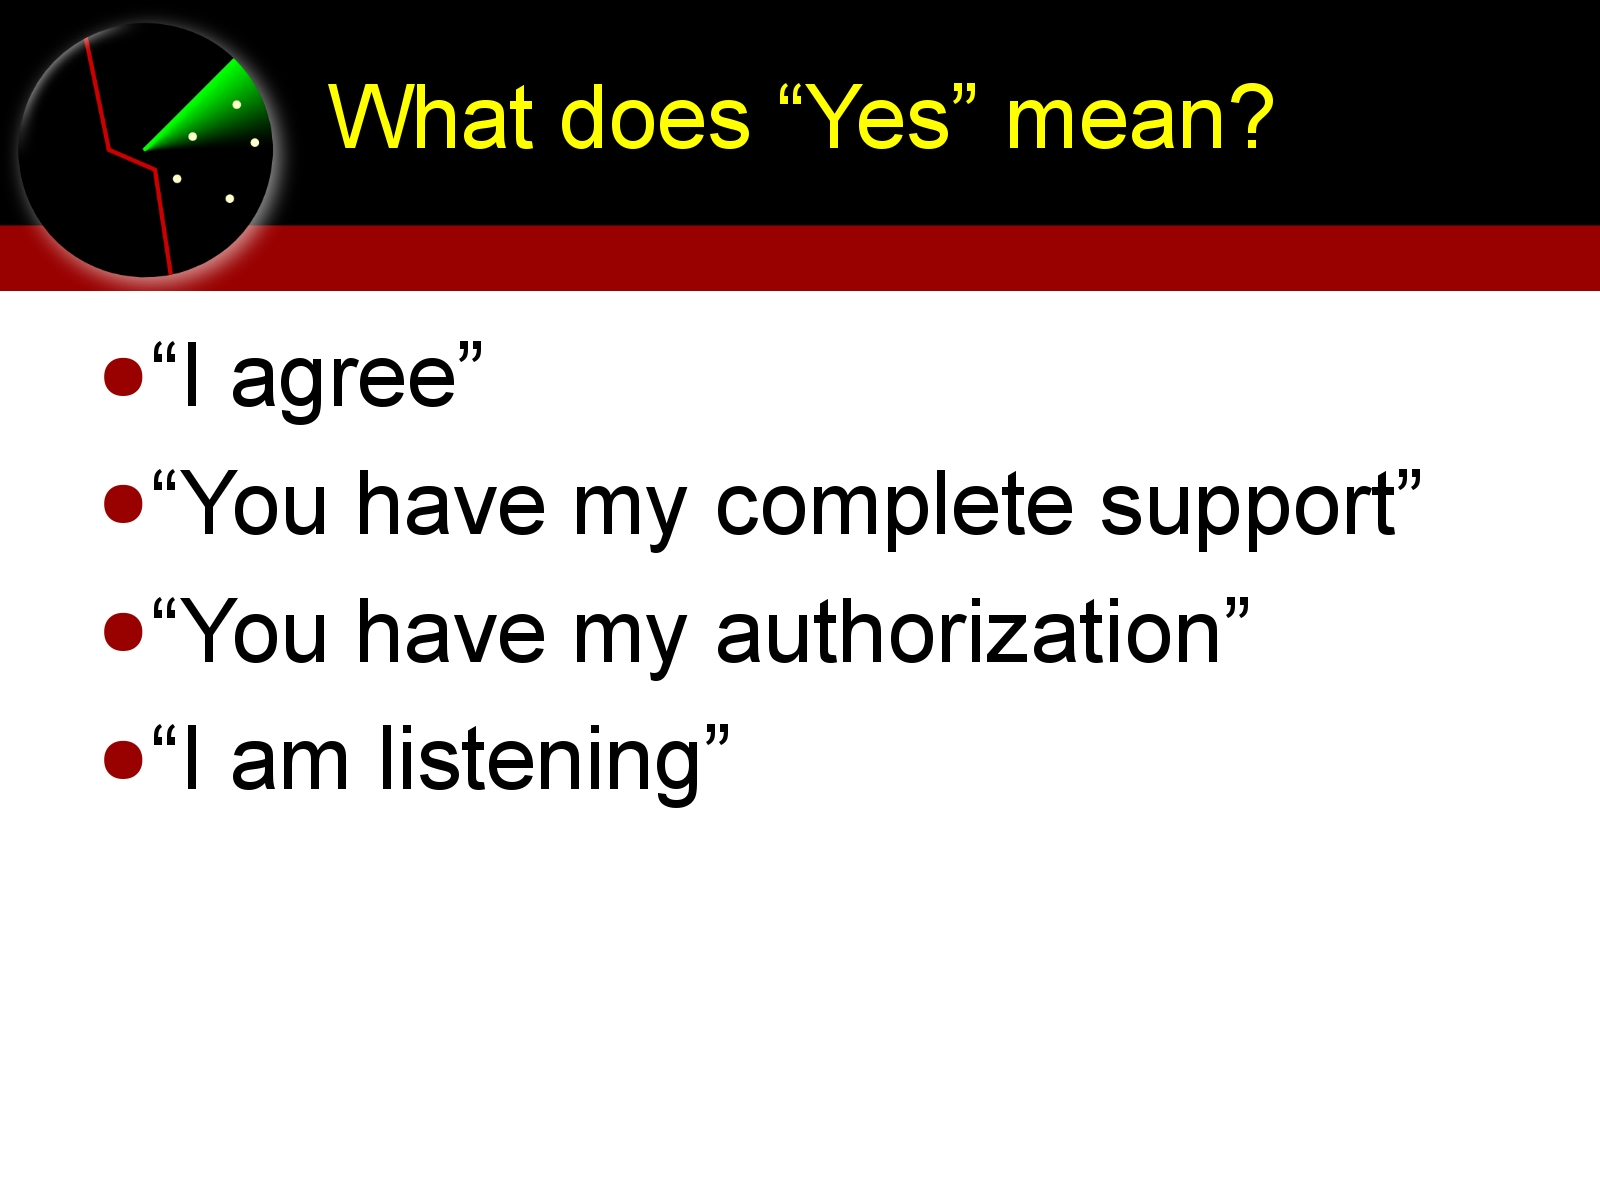 What does Yes mean?